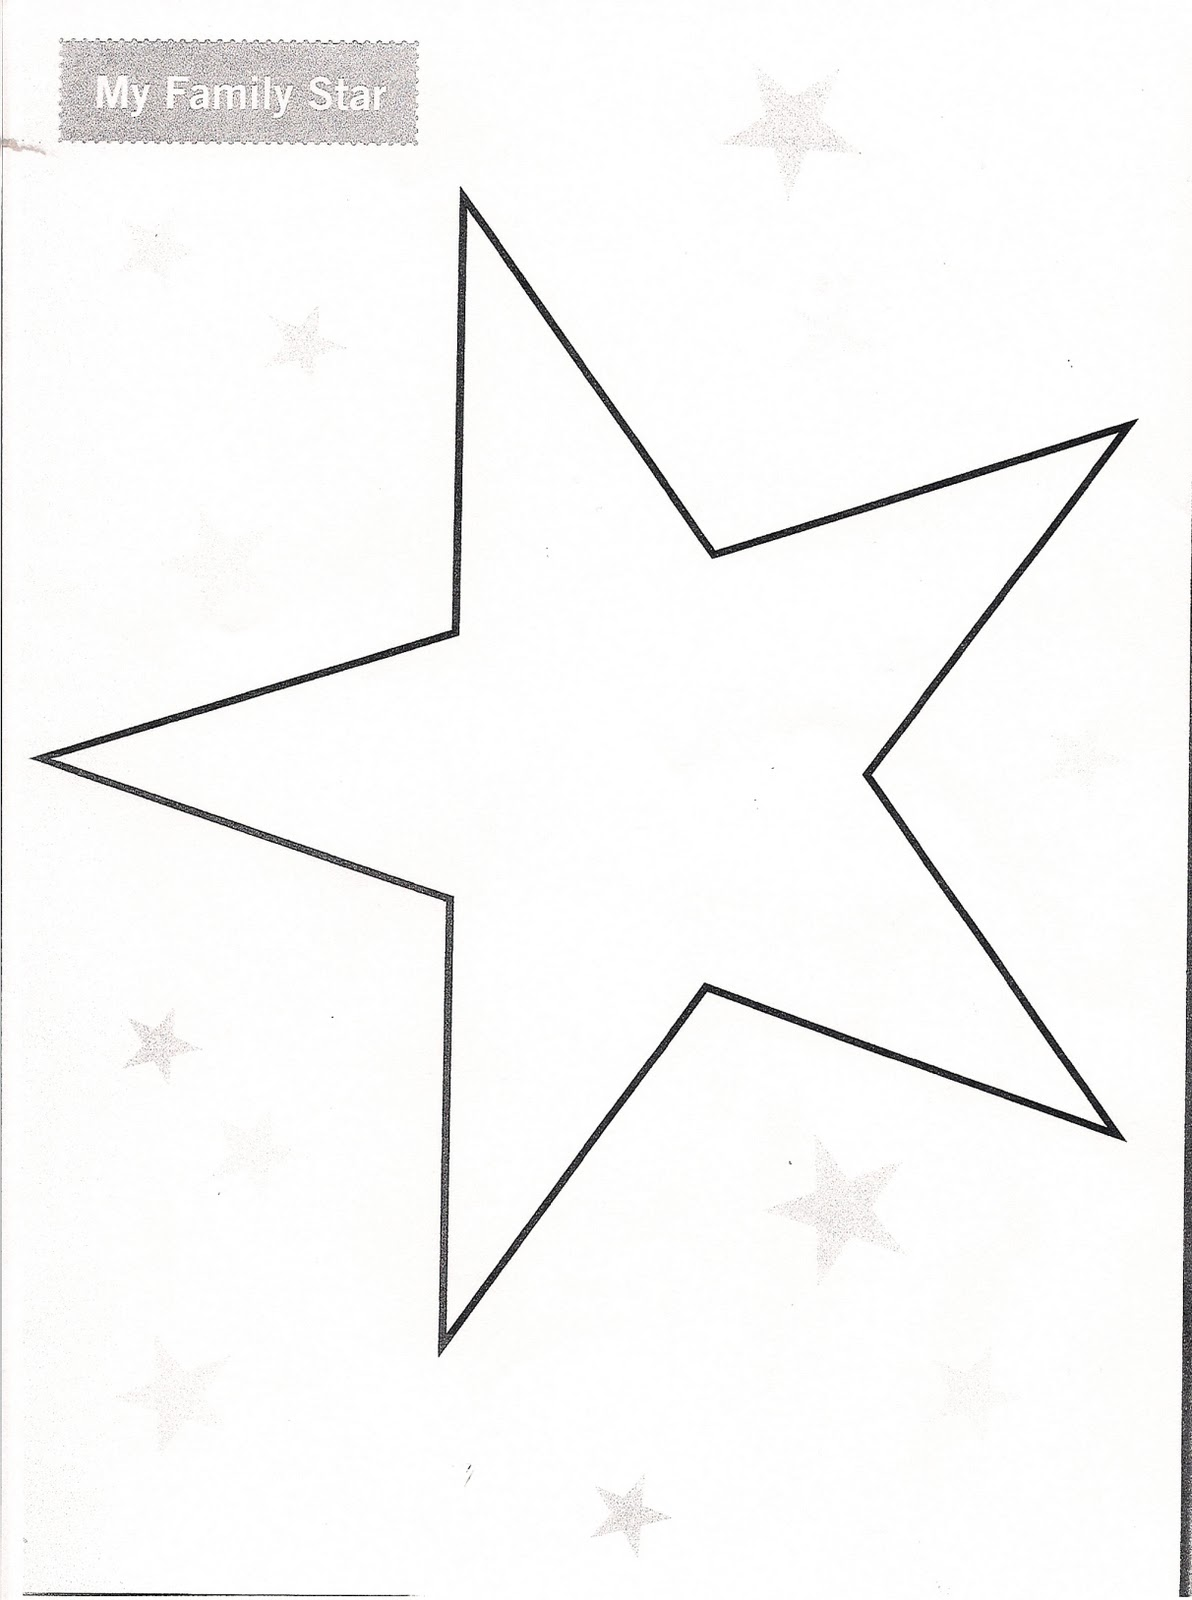 Troop Family Star